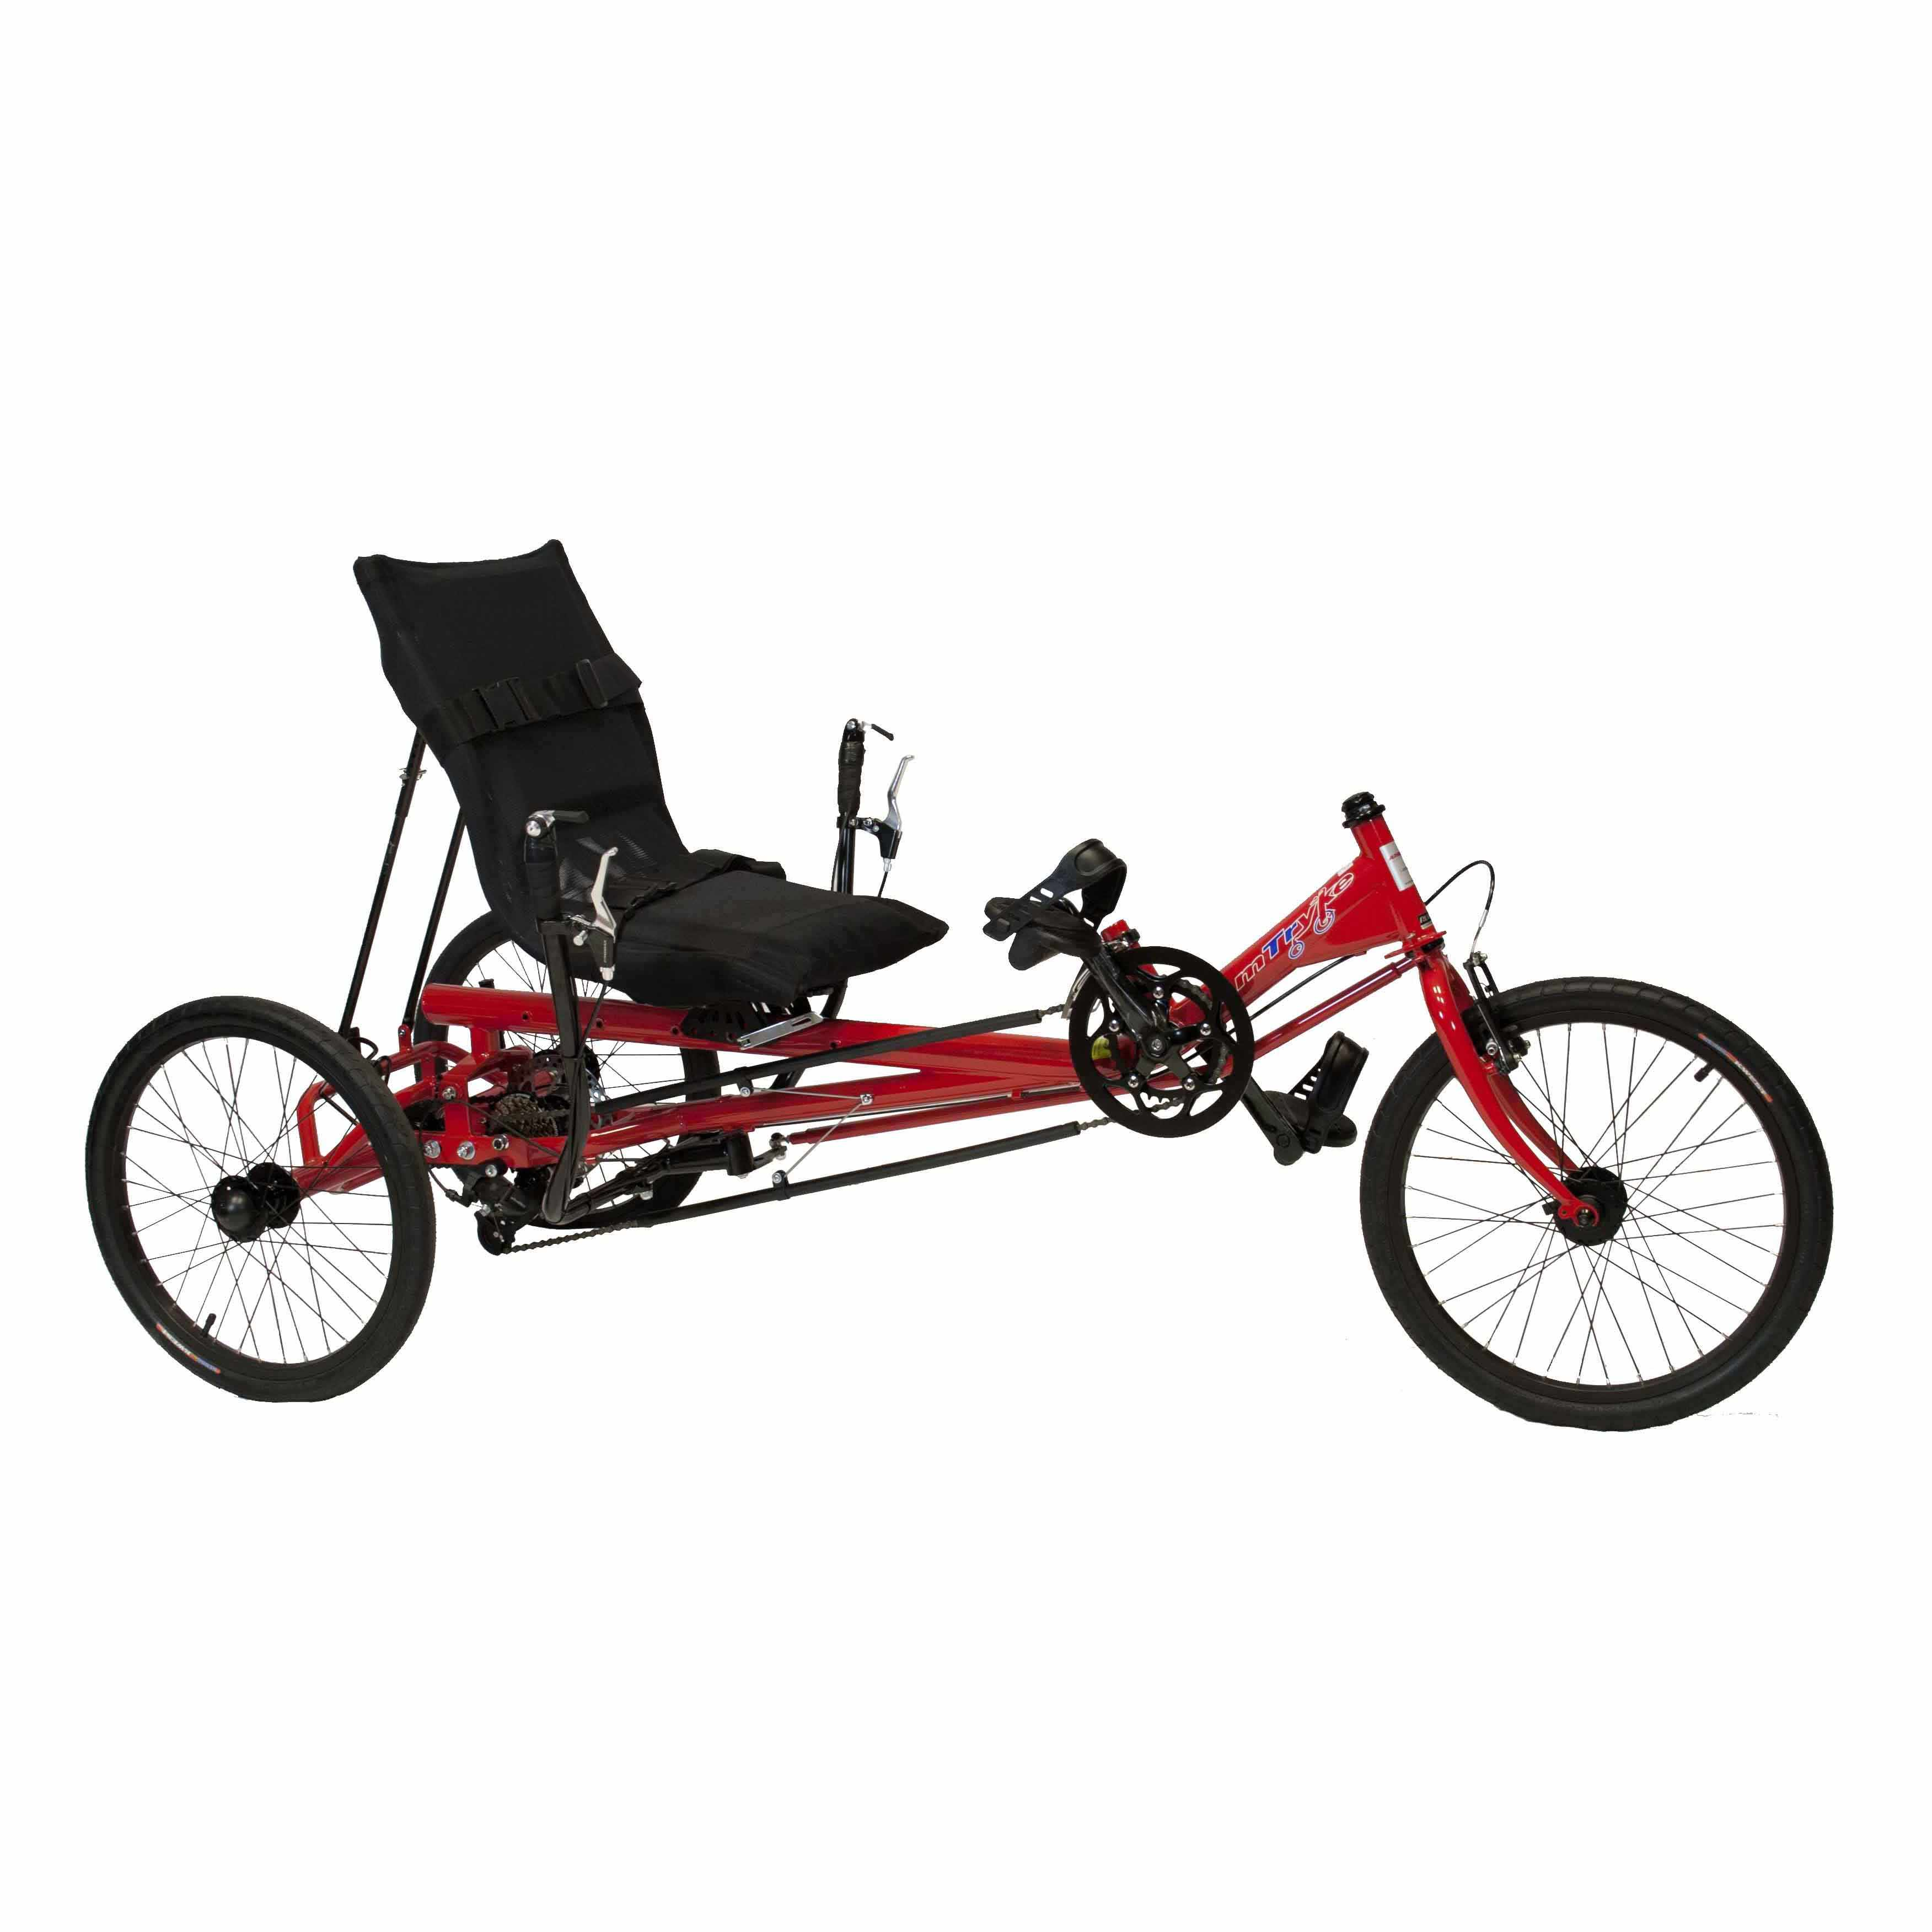 Amtryke JT-2300 USS tricycle with recumbent seat